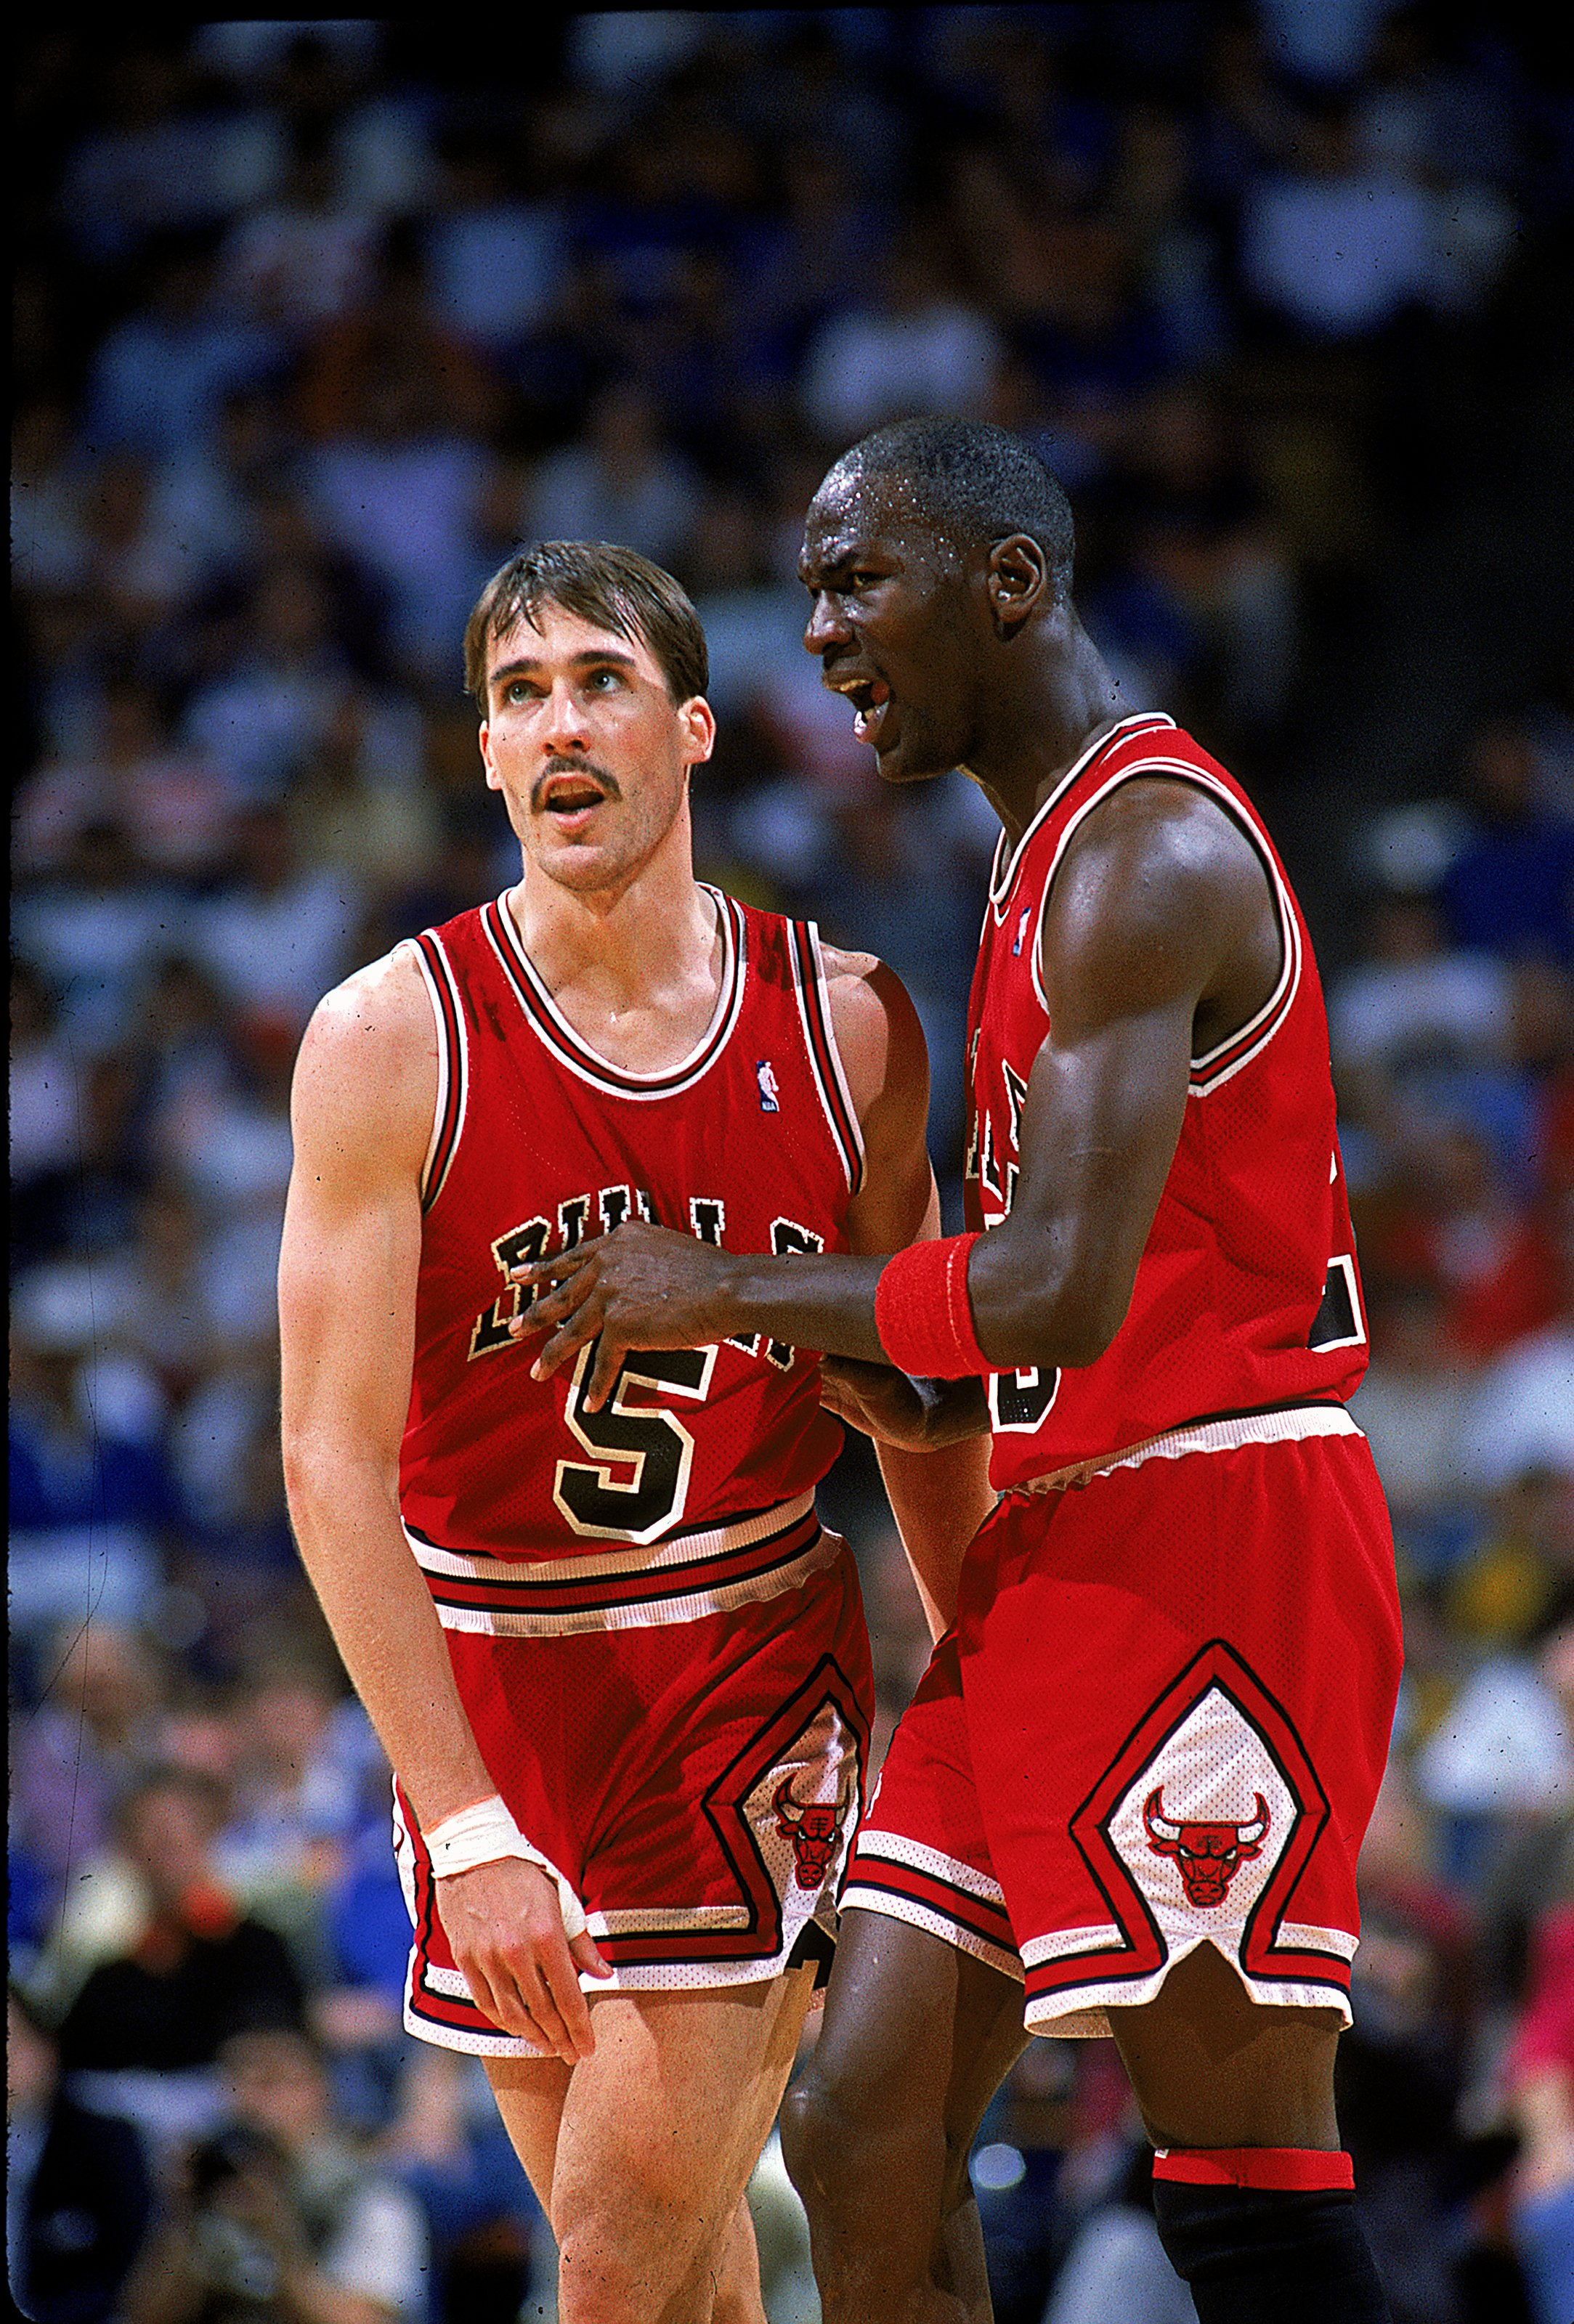 1987-1988:  Michael Jordan #23 of the Chicago Bulls walks with teammate on the court during the game.   Mandatory Credit: Allsport  /Allsport